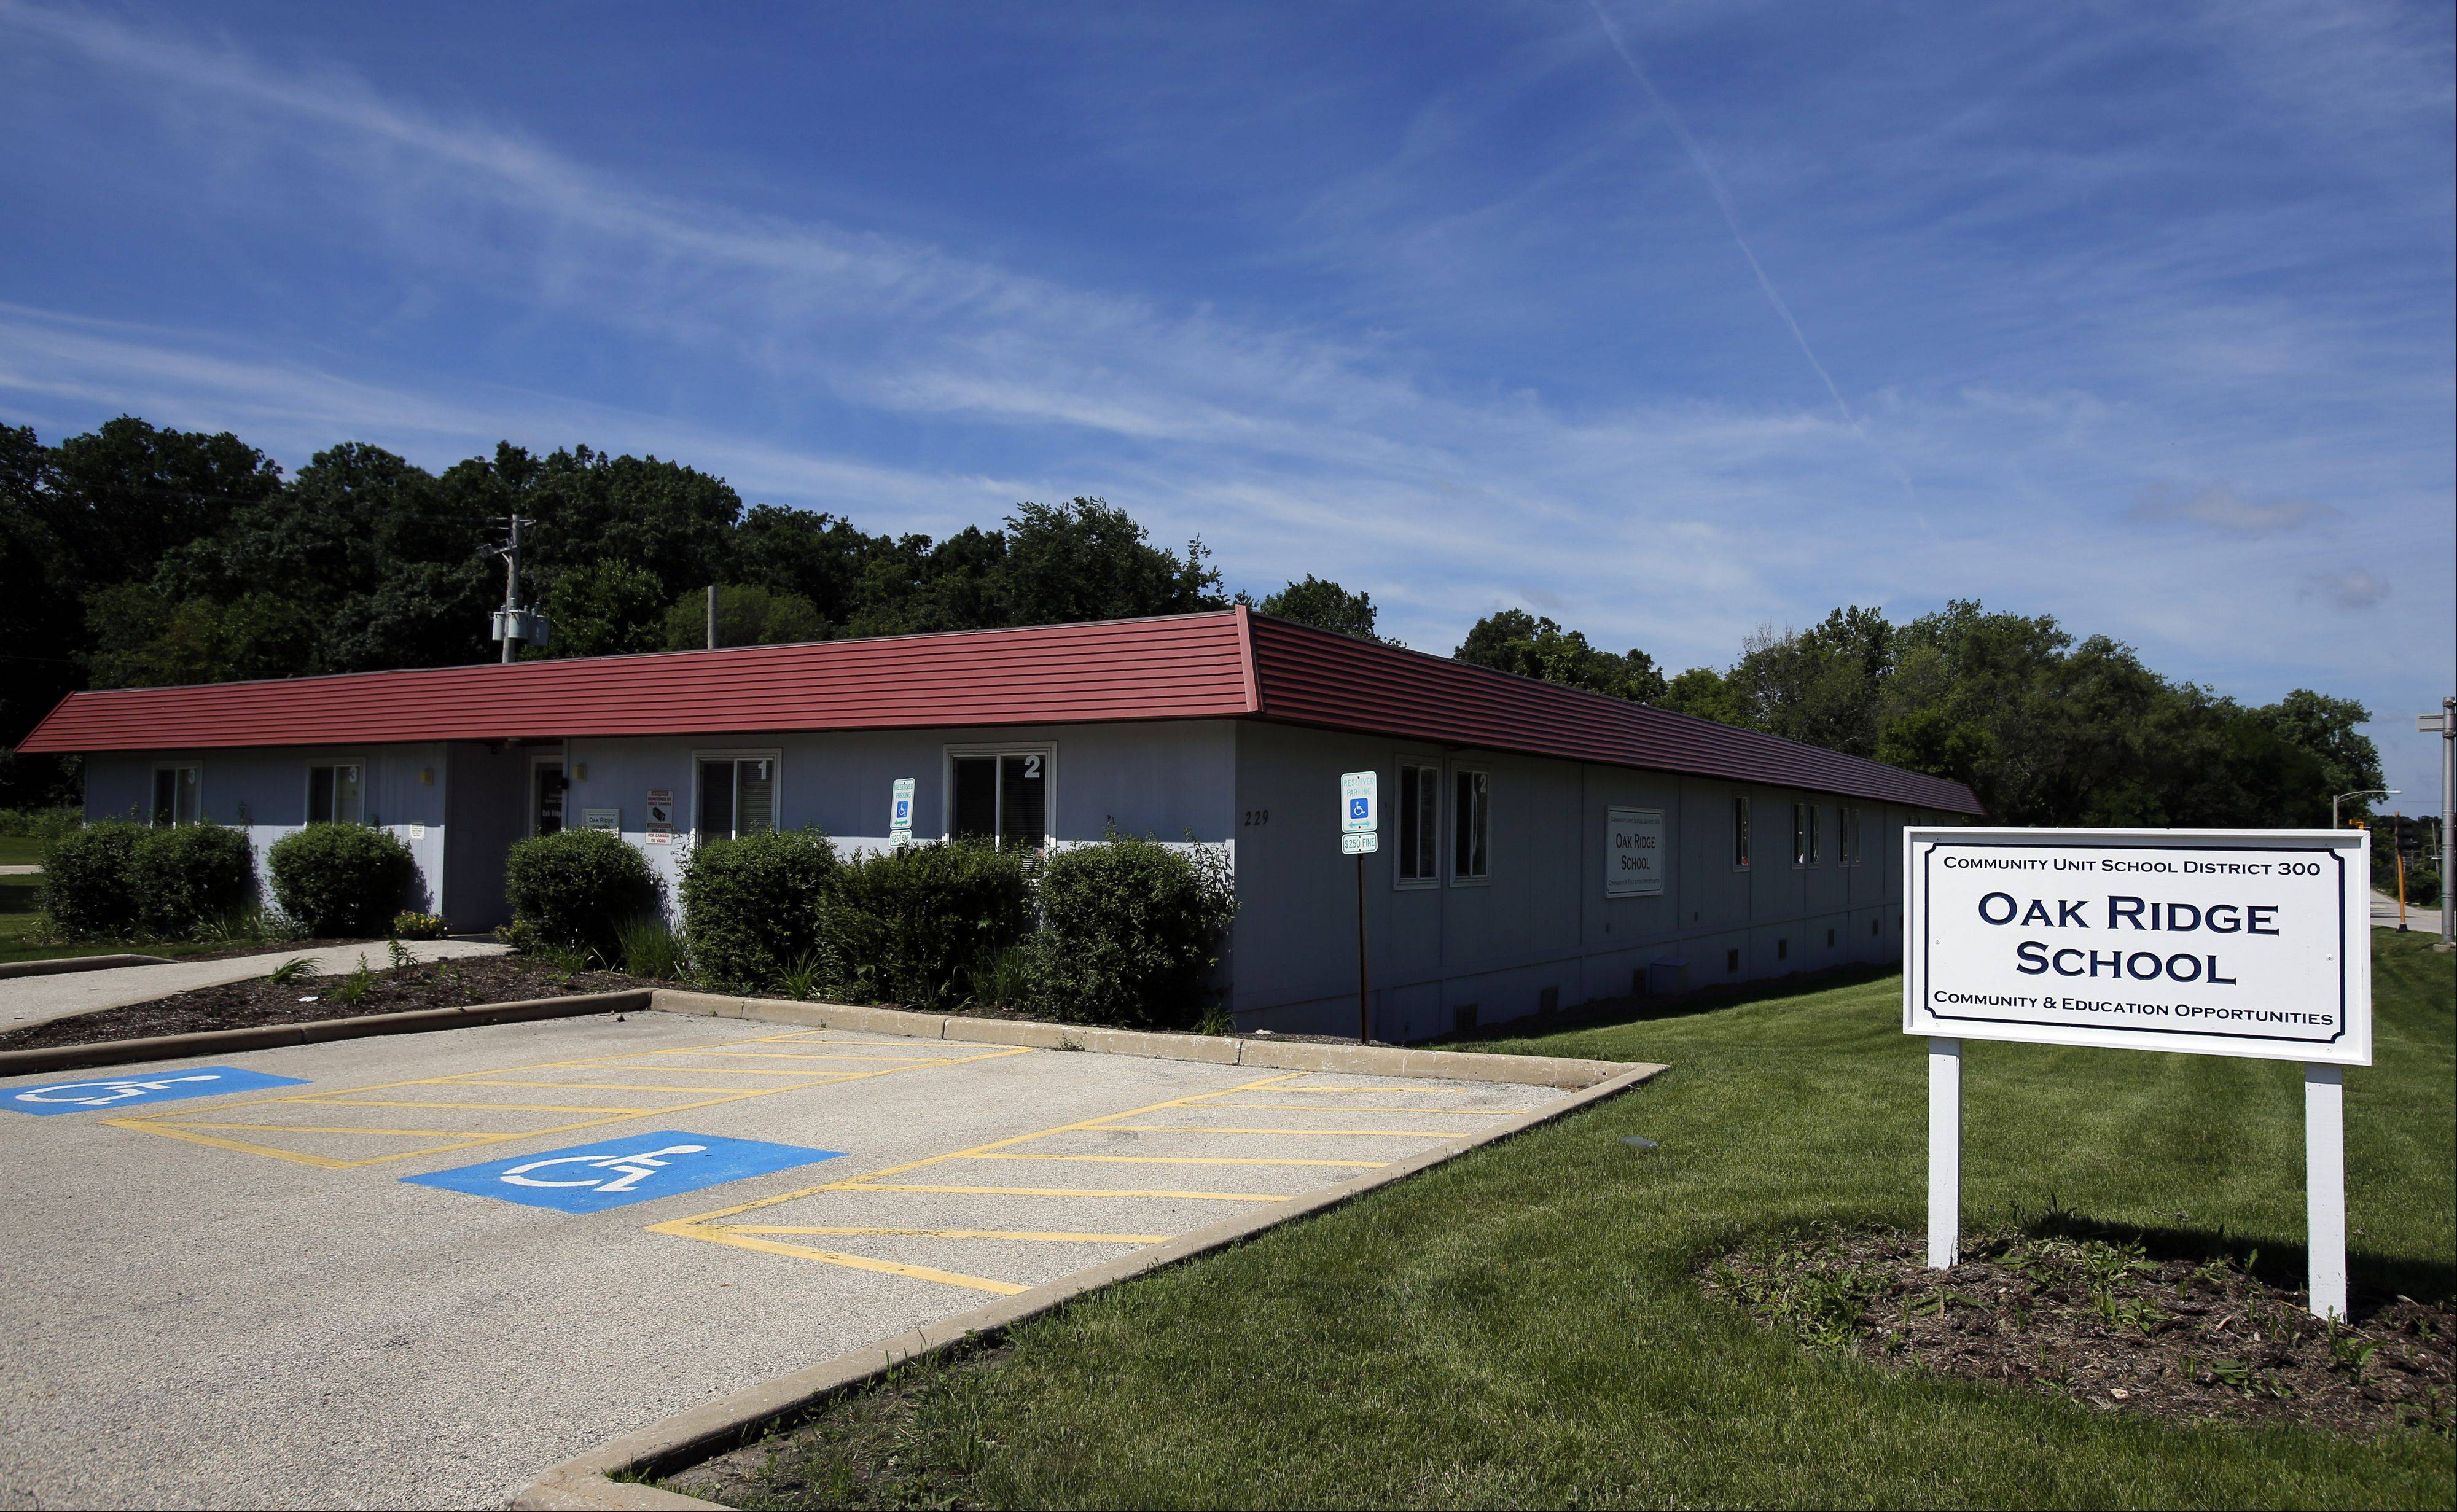 Community Unit District 300 is searching for a more permanent home for its alternative school. School board members approved a resolution to put the current Oak Ridge property on the market in July.